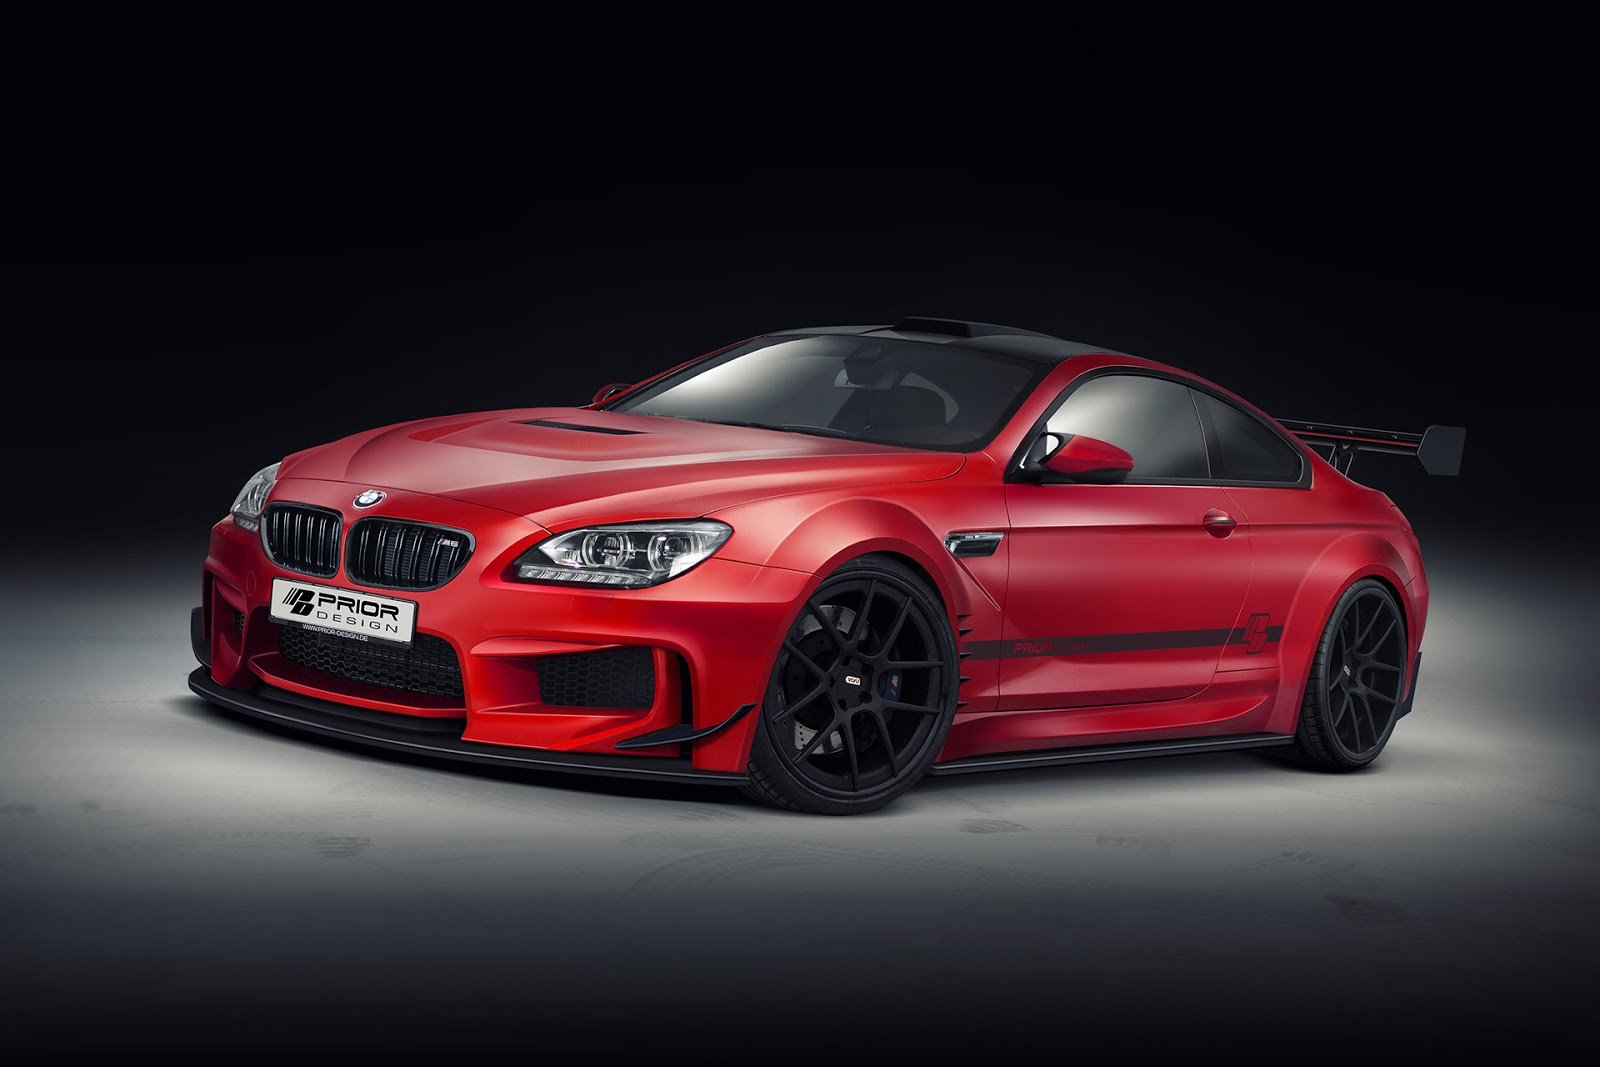 PRIOR-DESIGN BMW M6 F12/F13 PD6XX Widebody Aerodynamic-kit announced!-2.bp.blogspot.com